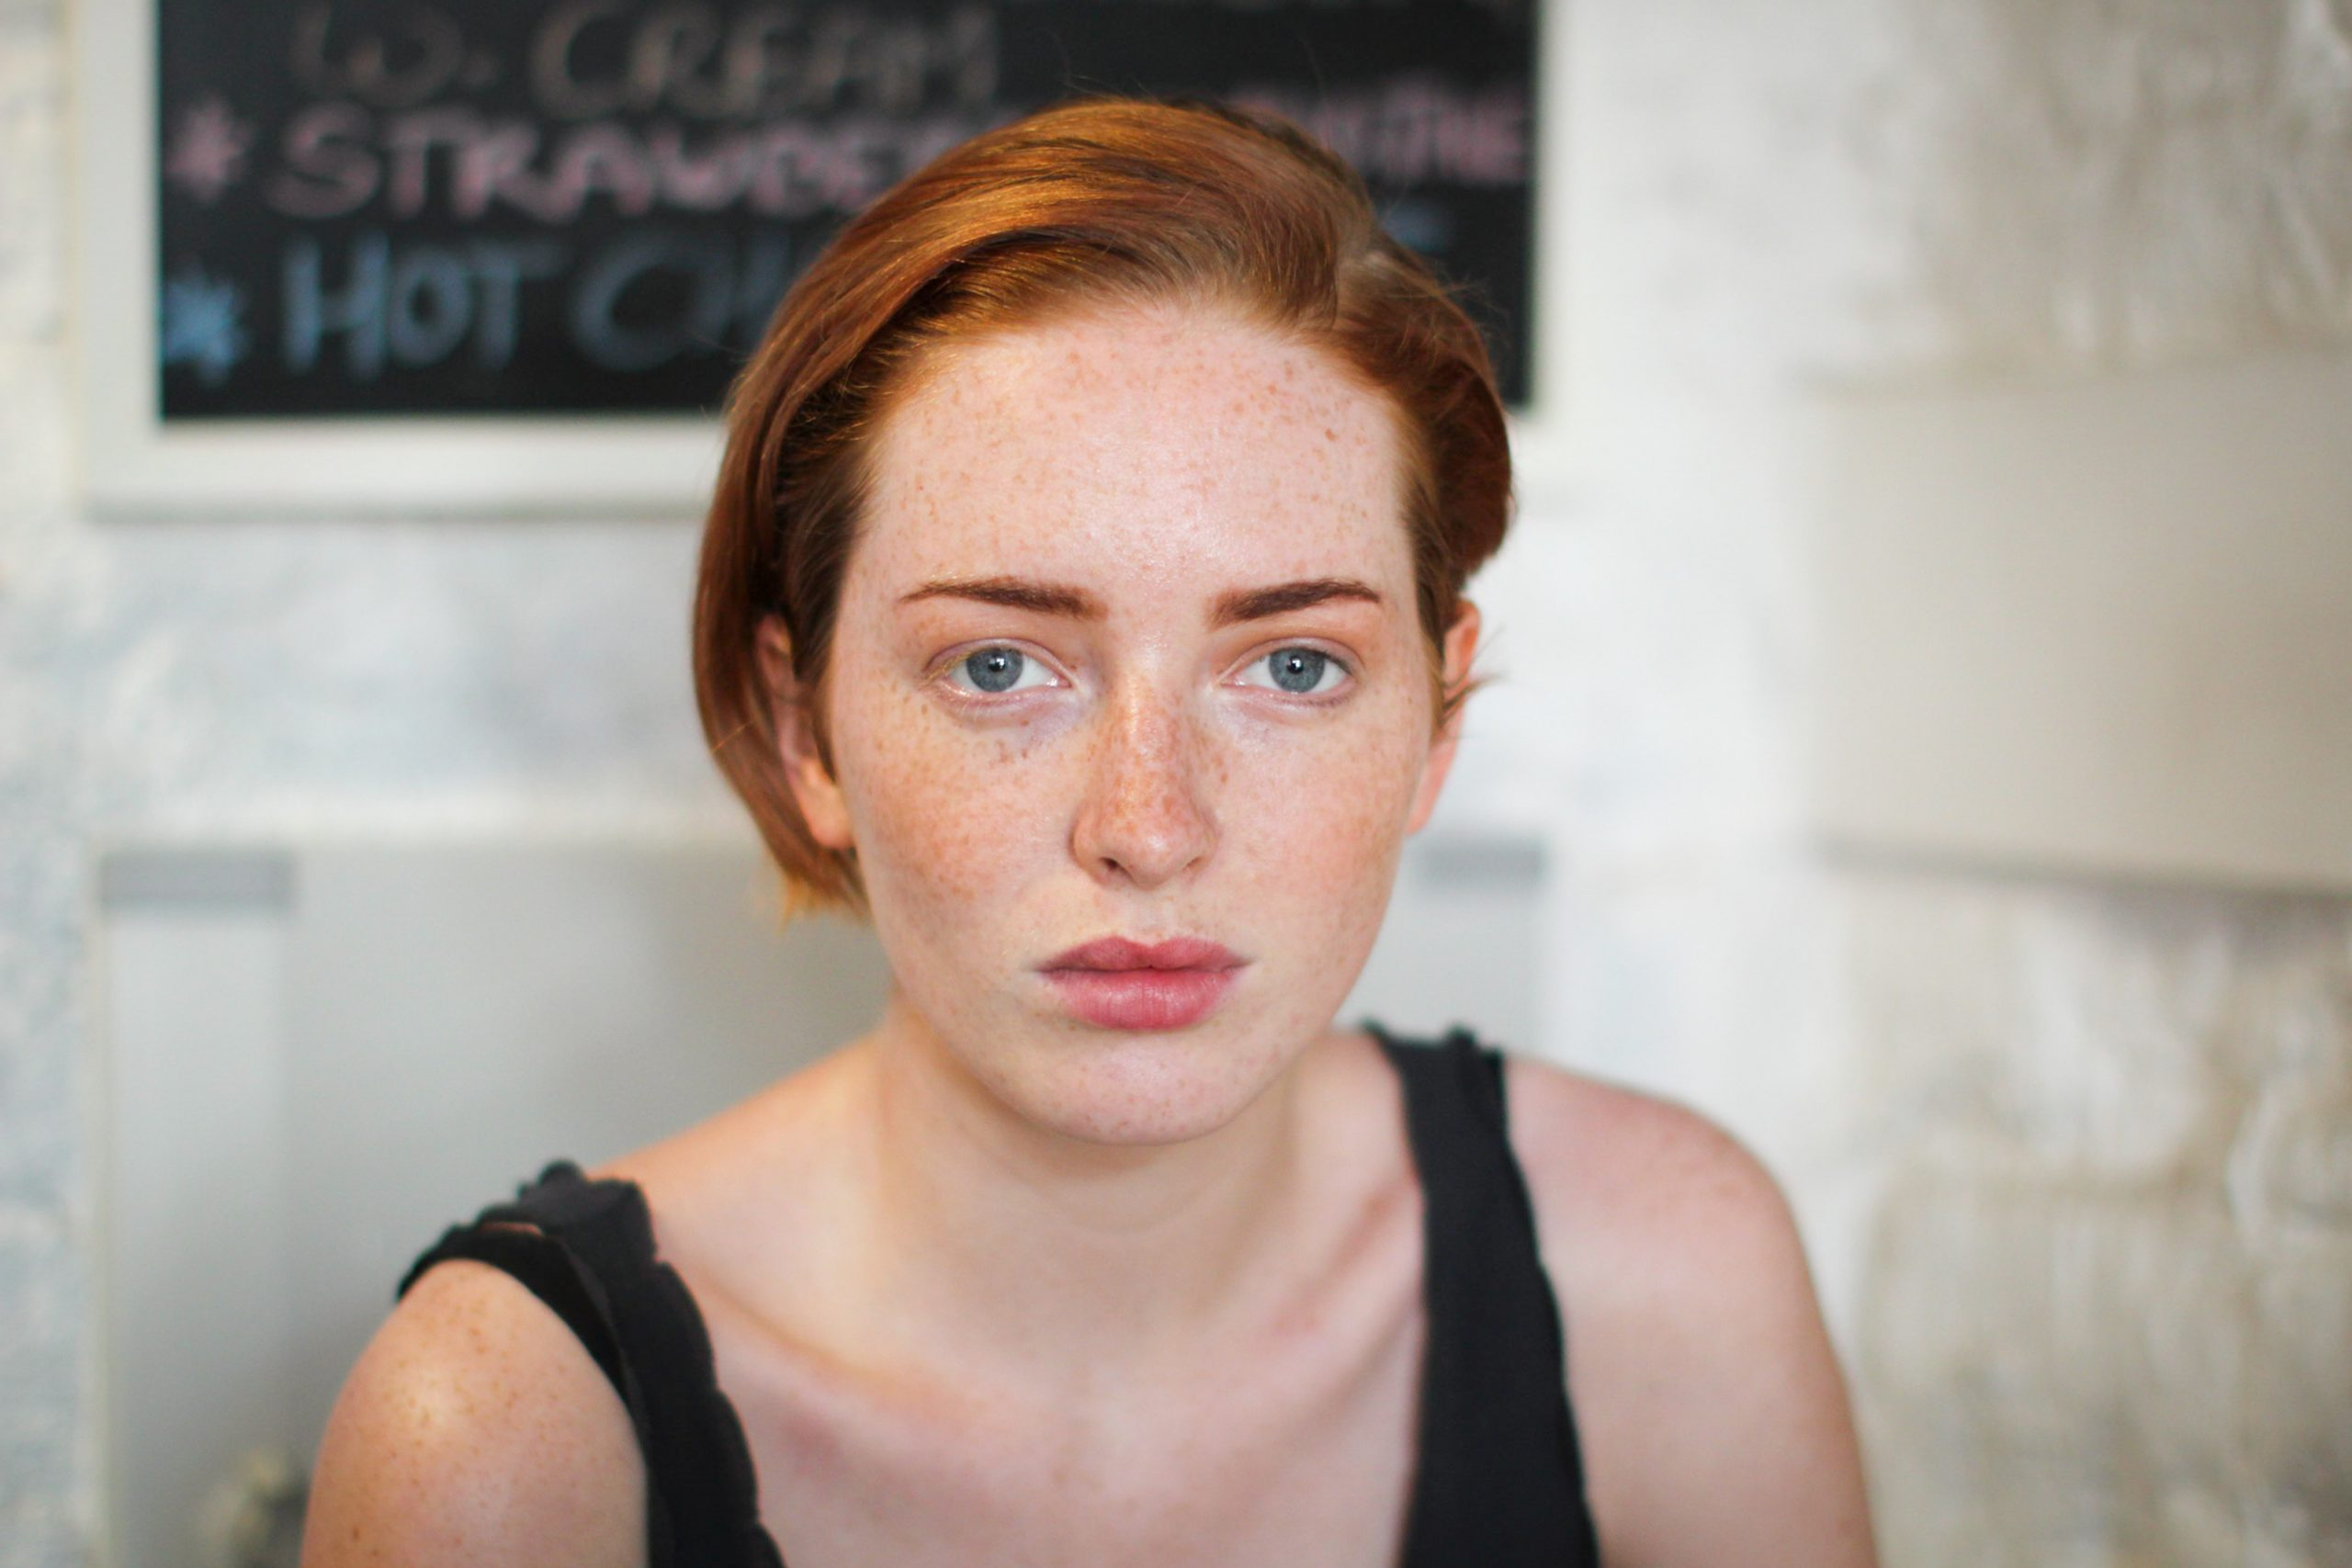 Red haired person looking at the camera